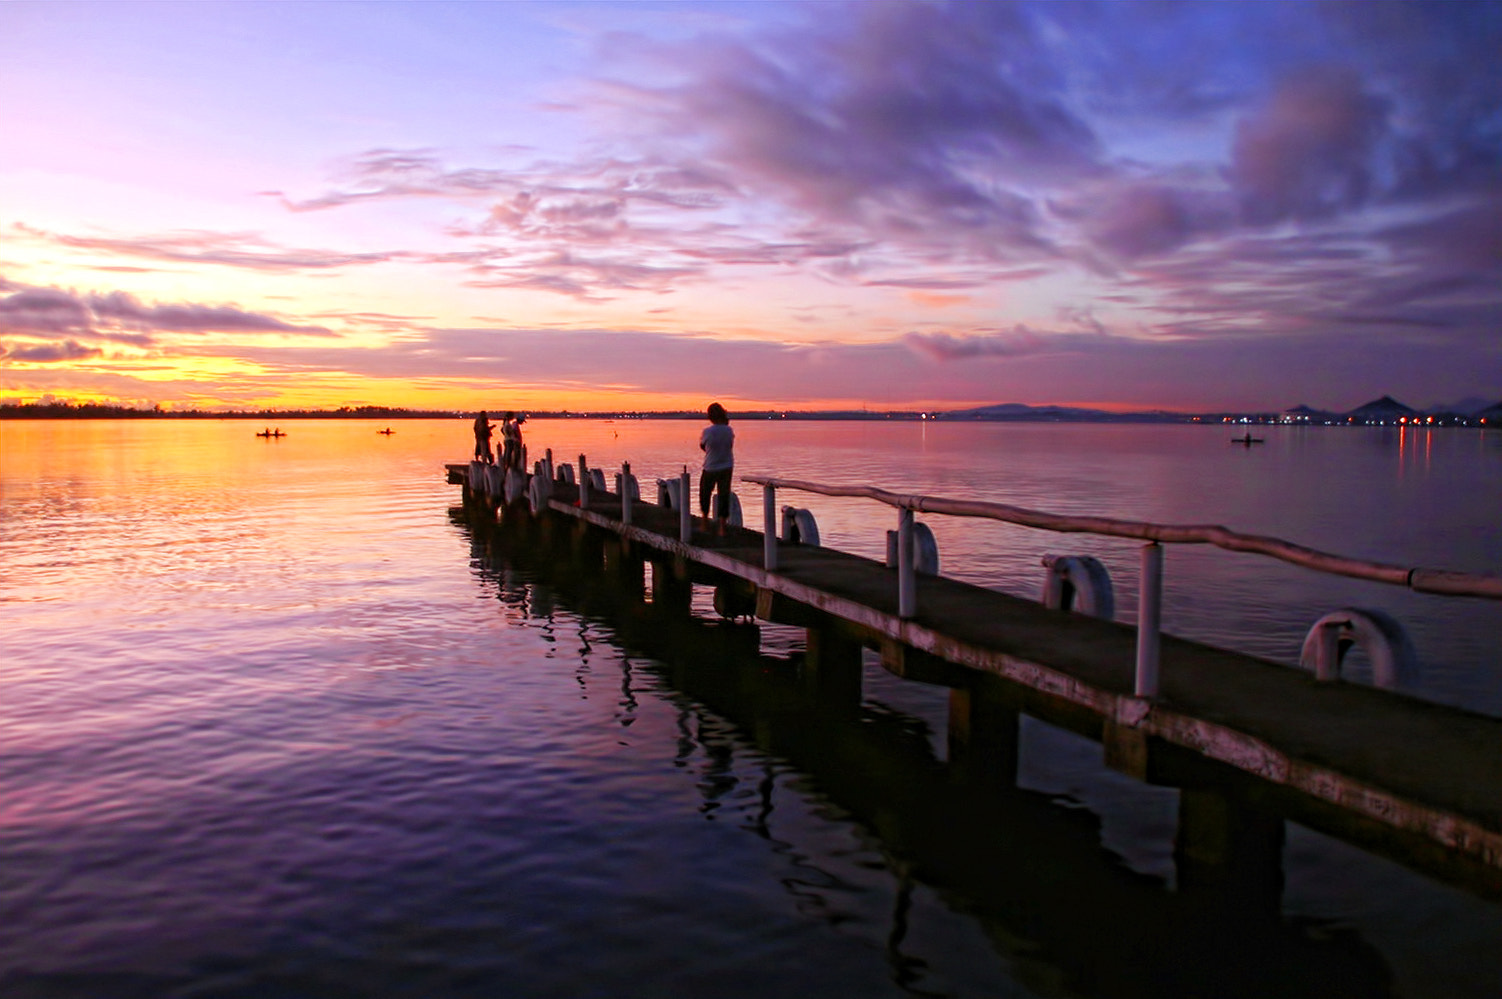 Photograph Balyuan pier at sunrise by Vey Telmo on 500px